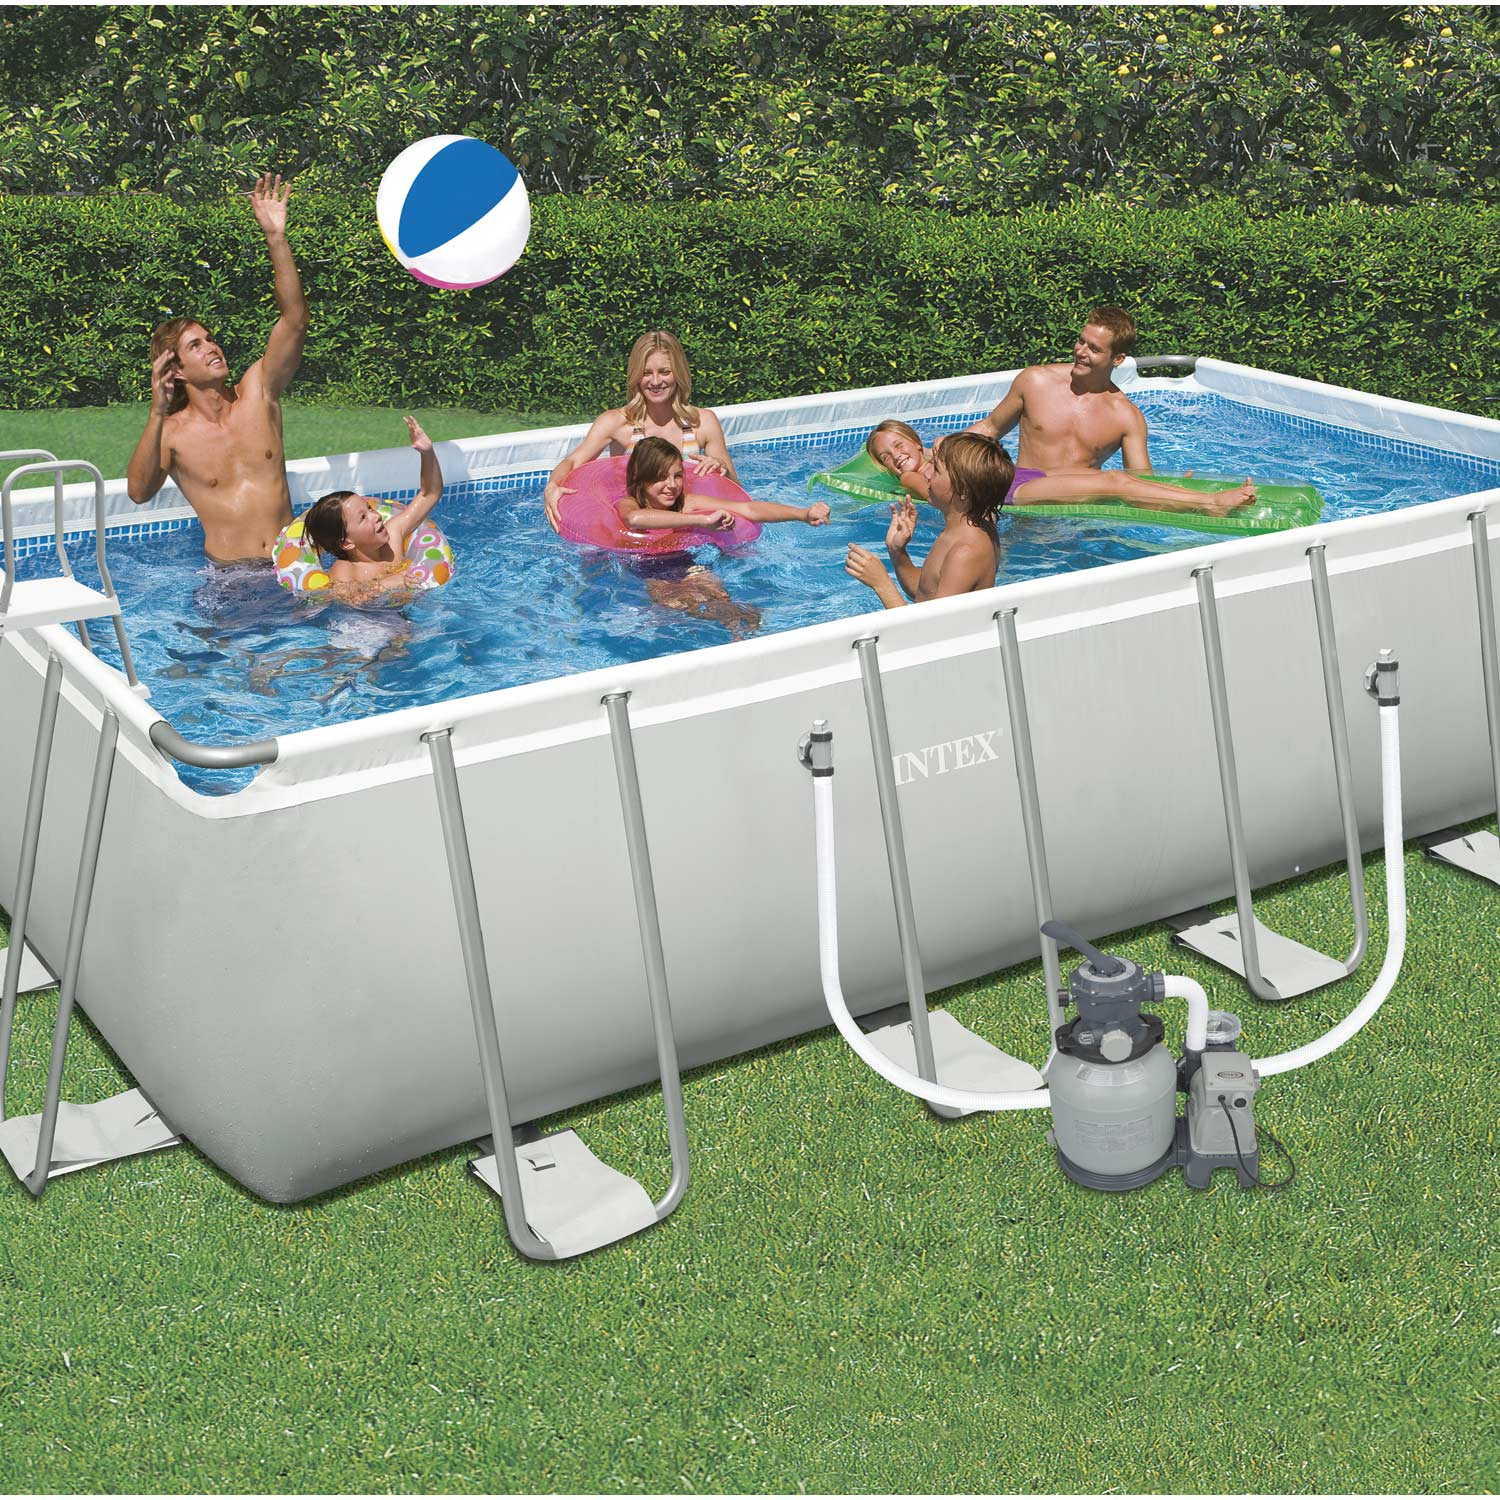 Piscine hors sol autoportante tubulaire ultra silver intex for Piscine hors sol tarif